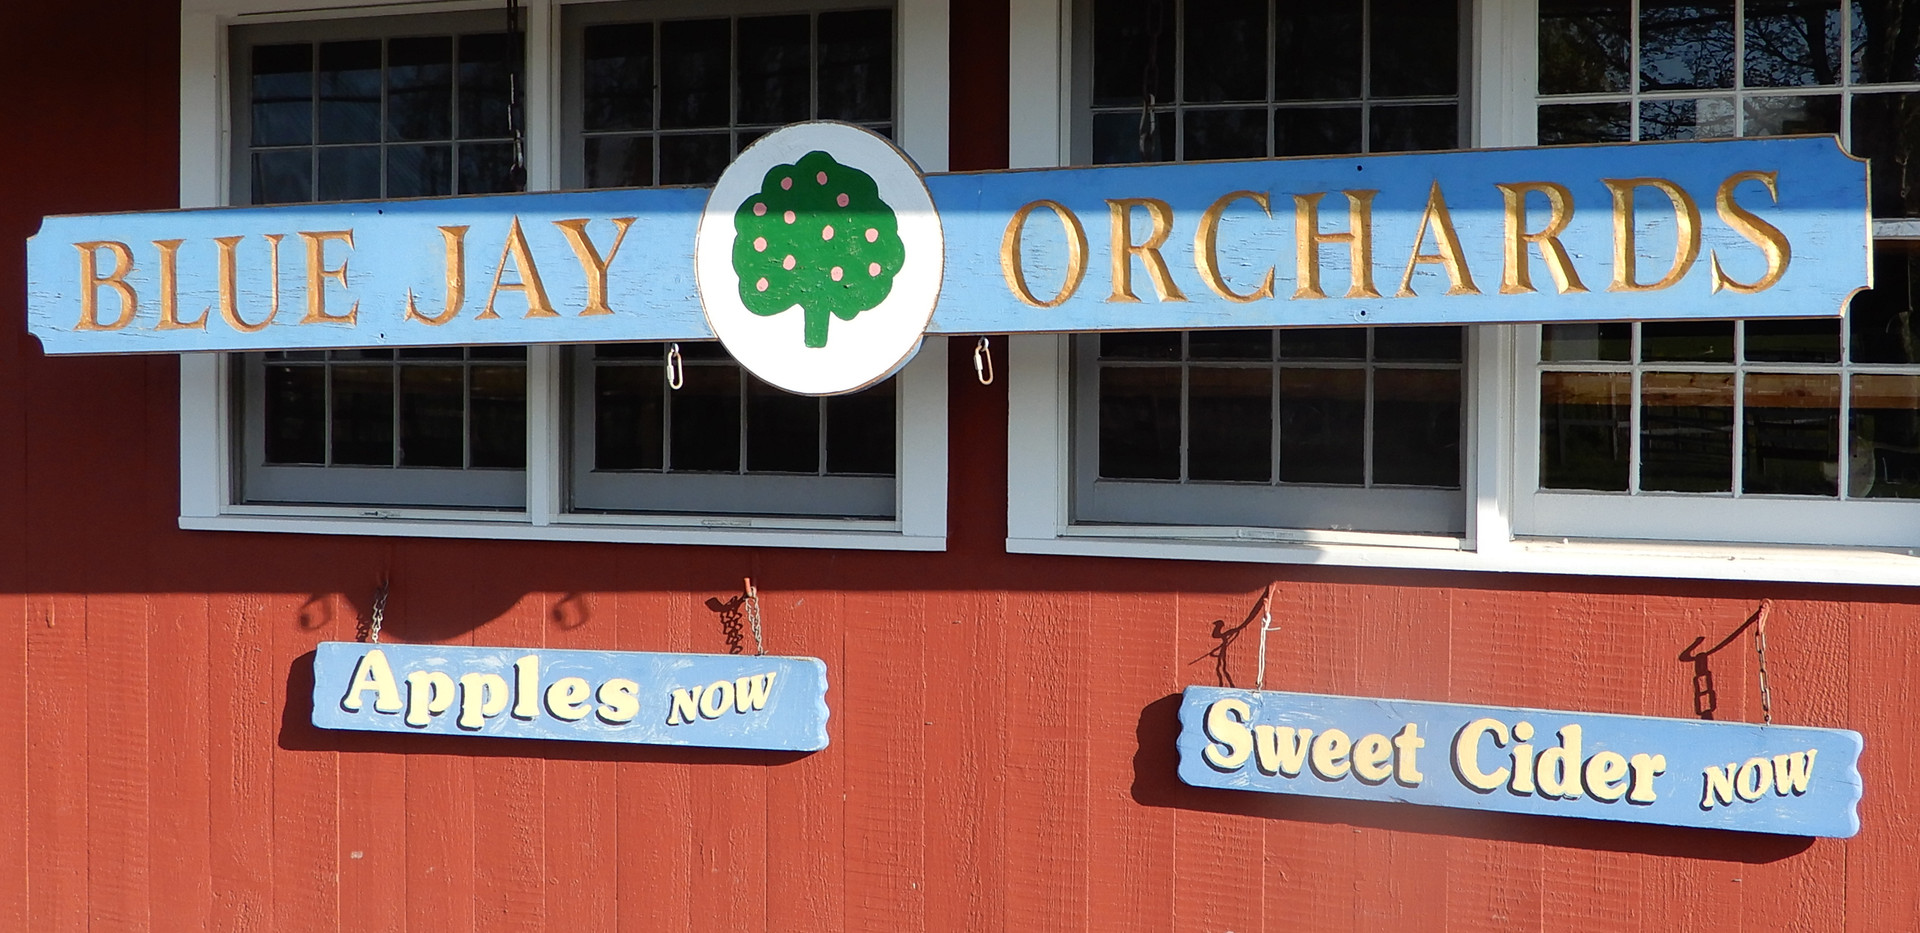 Blue Jay Orchards - Market Sign